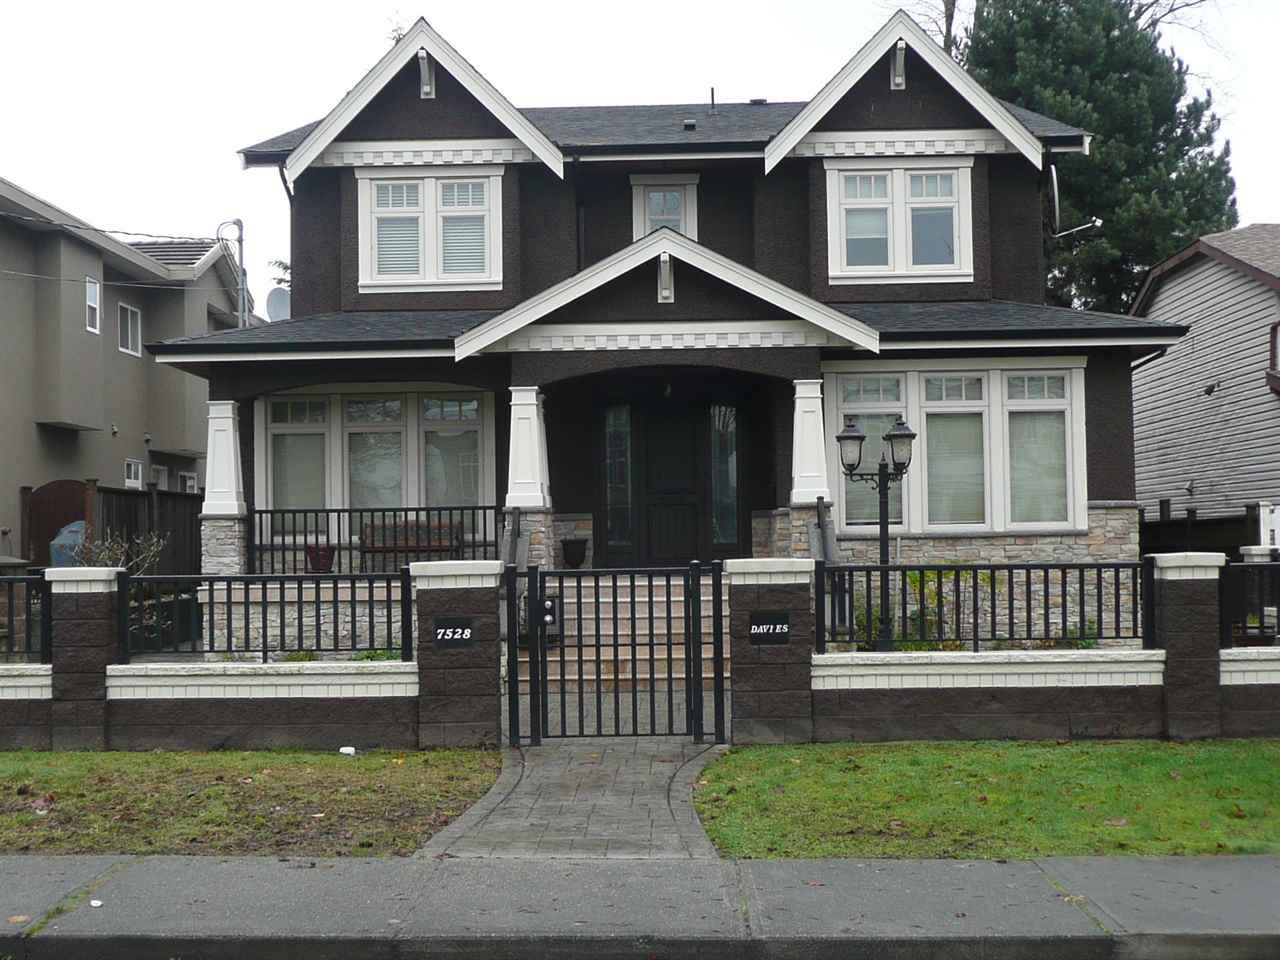 Main Photo: 7528 DAVIES Street in Burnaby: Edmonds BE House for sale (Burnaby East)  : MLS®# R2123818